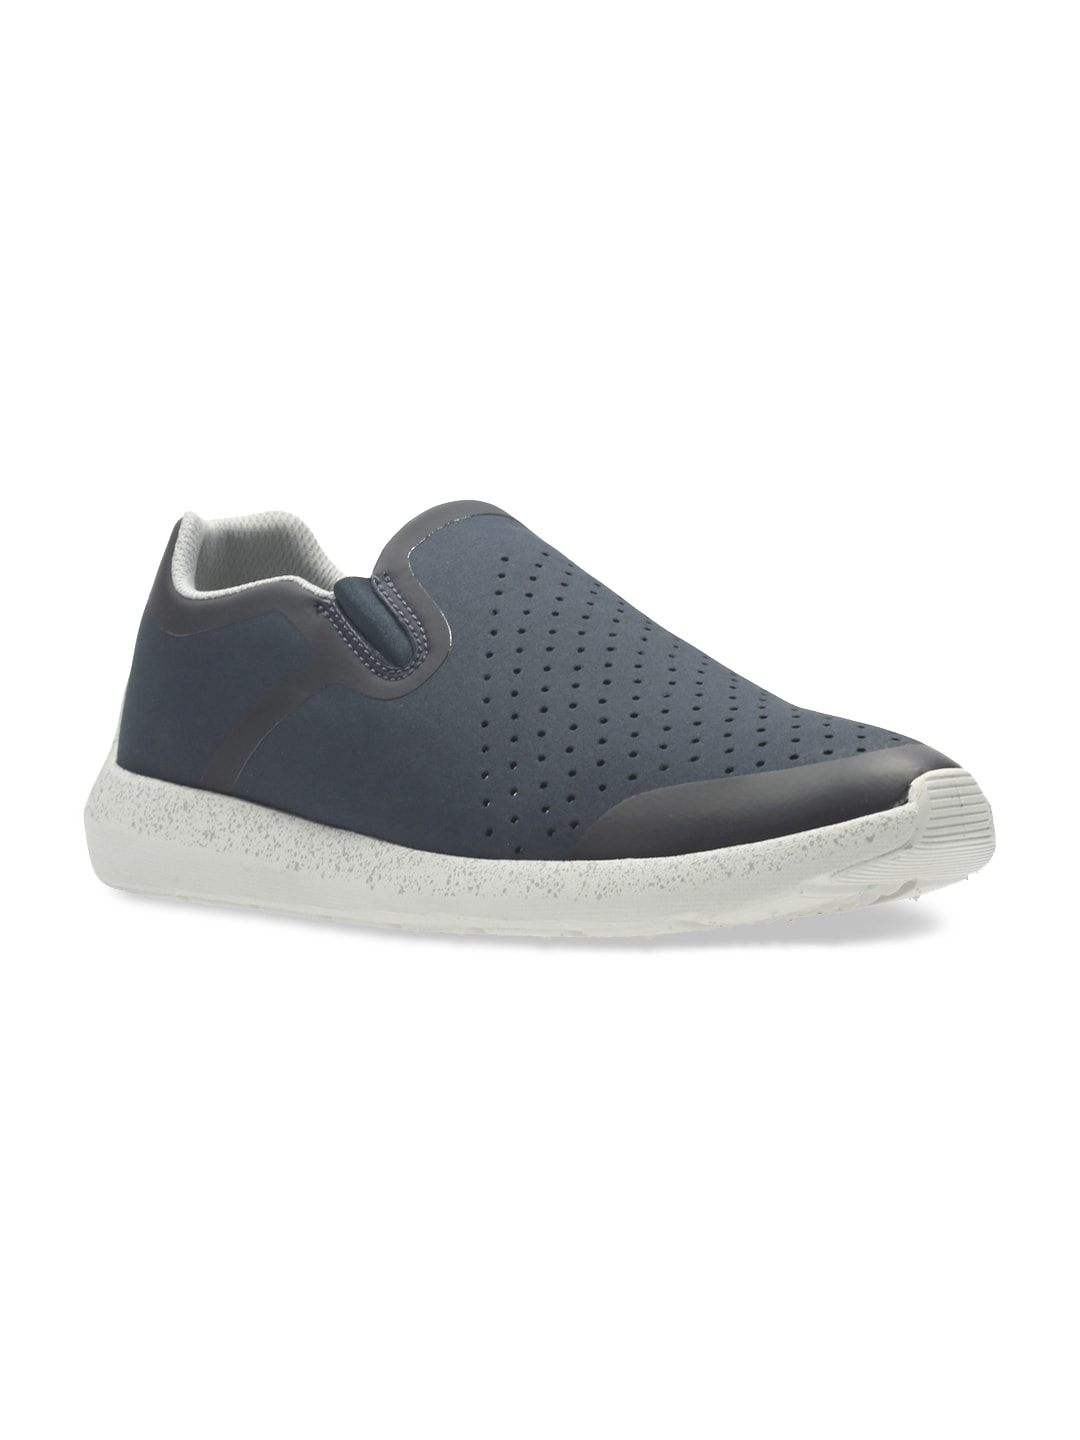 Clarks Men Blue Perforated Torset Easy Slip-On Sneakers image